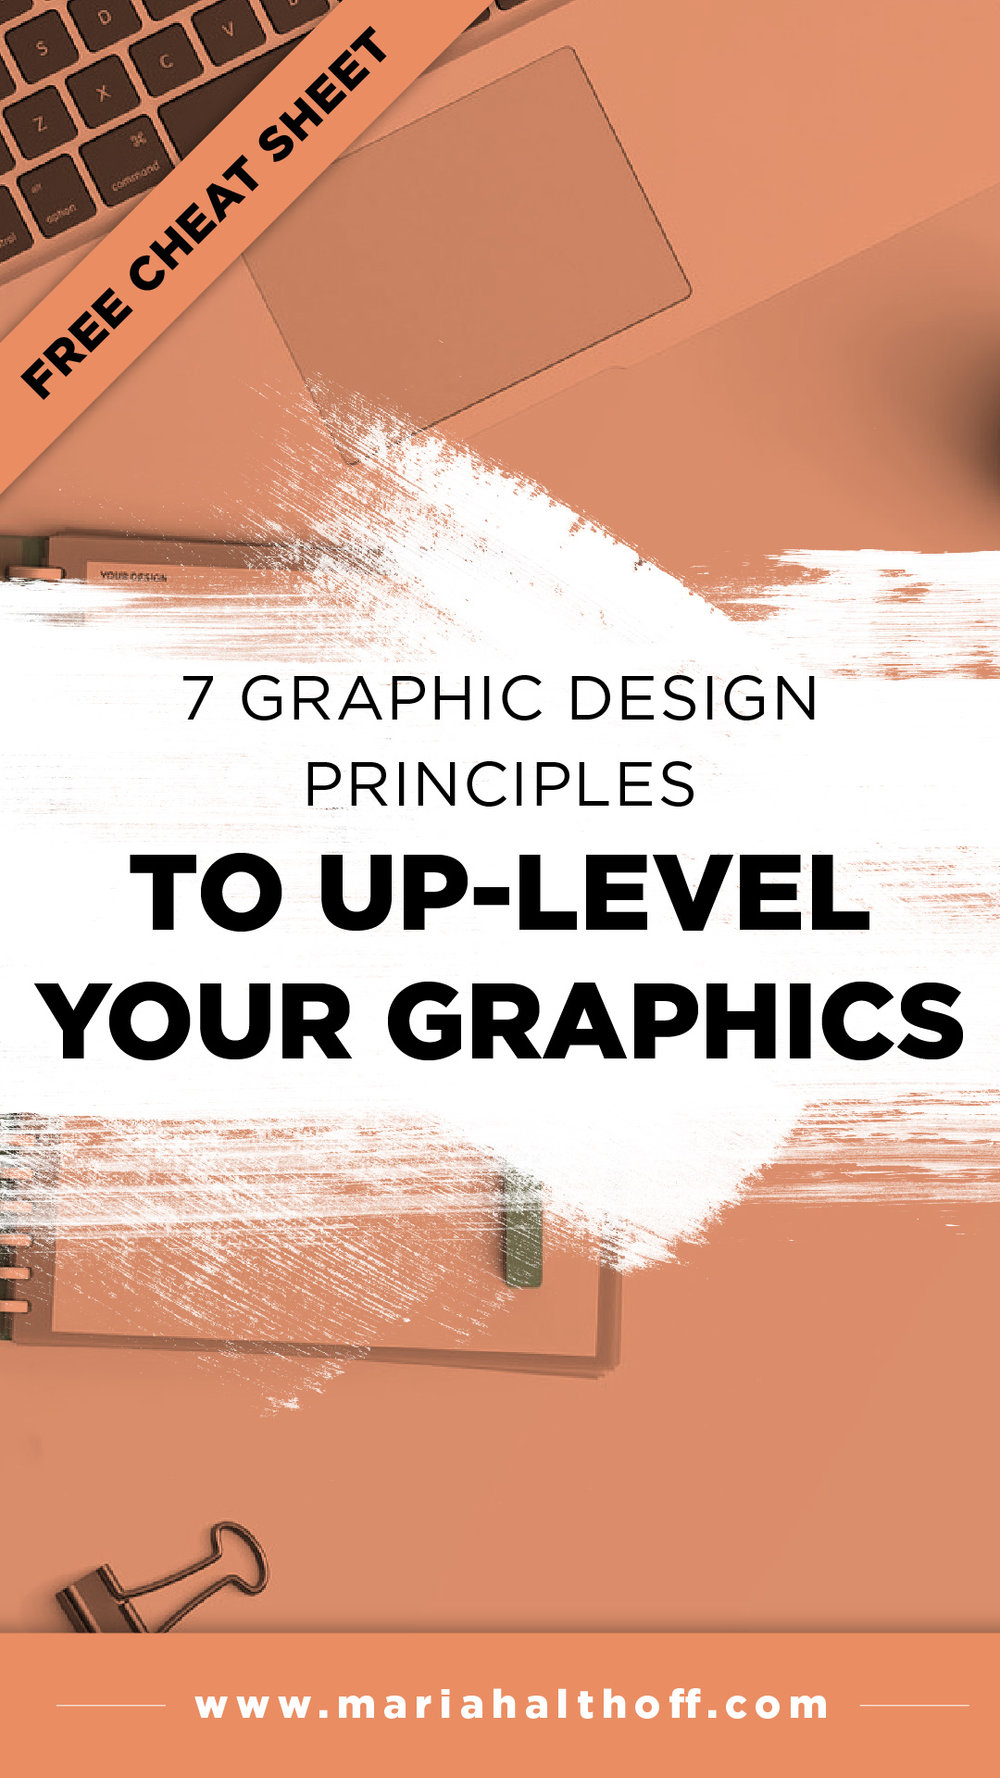 Use these seven design principles to up-level your graphics and stand out from your competition by learning to design like a professional.